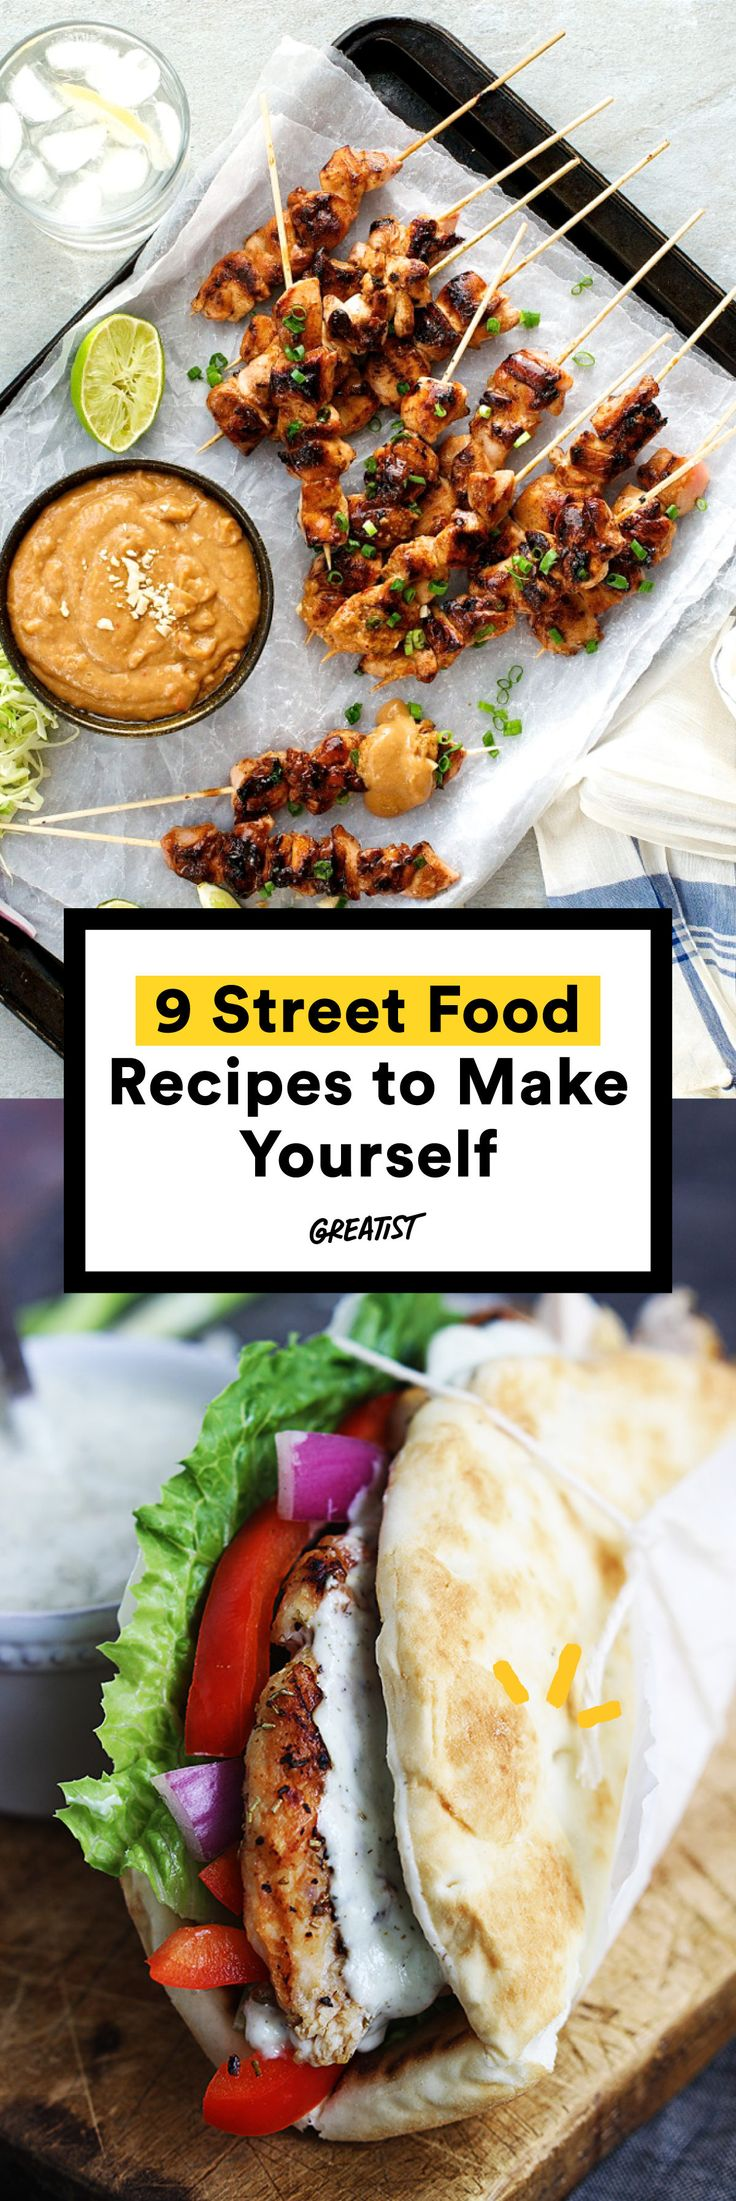 When walking outside takes too much effort—make your own street food. @soyvay #partner